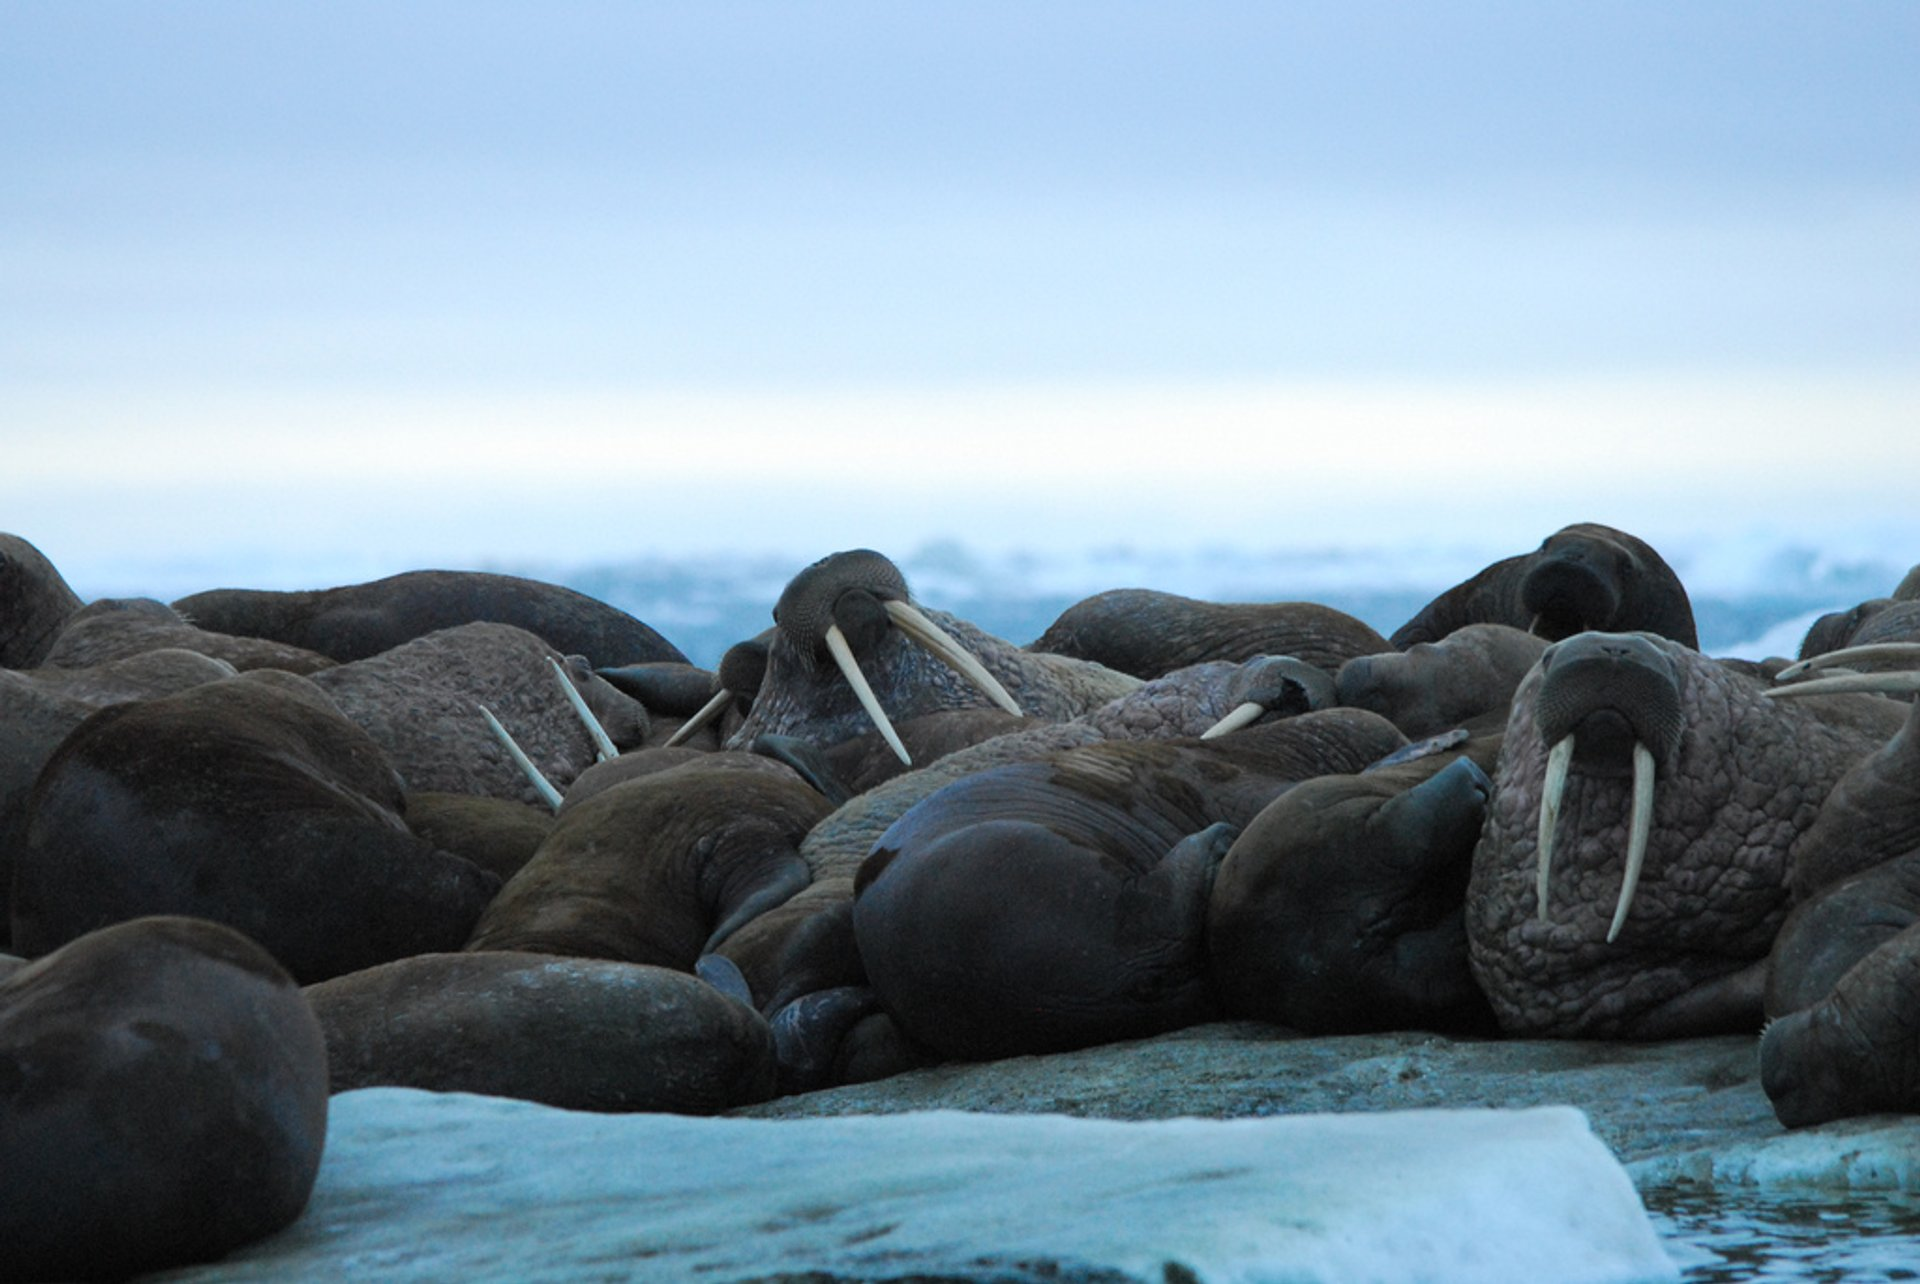 Walrus Watching in Alaska - Best Season 2020